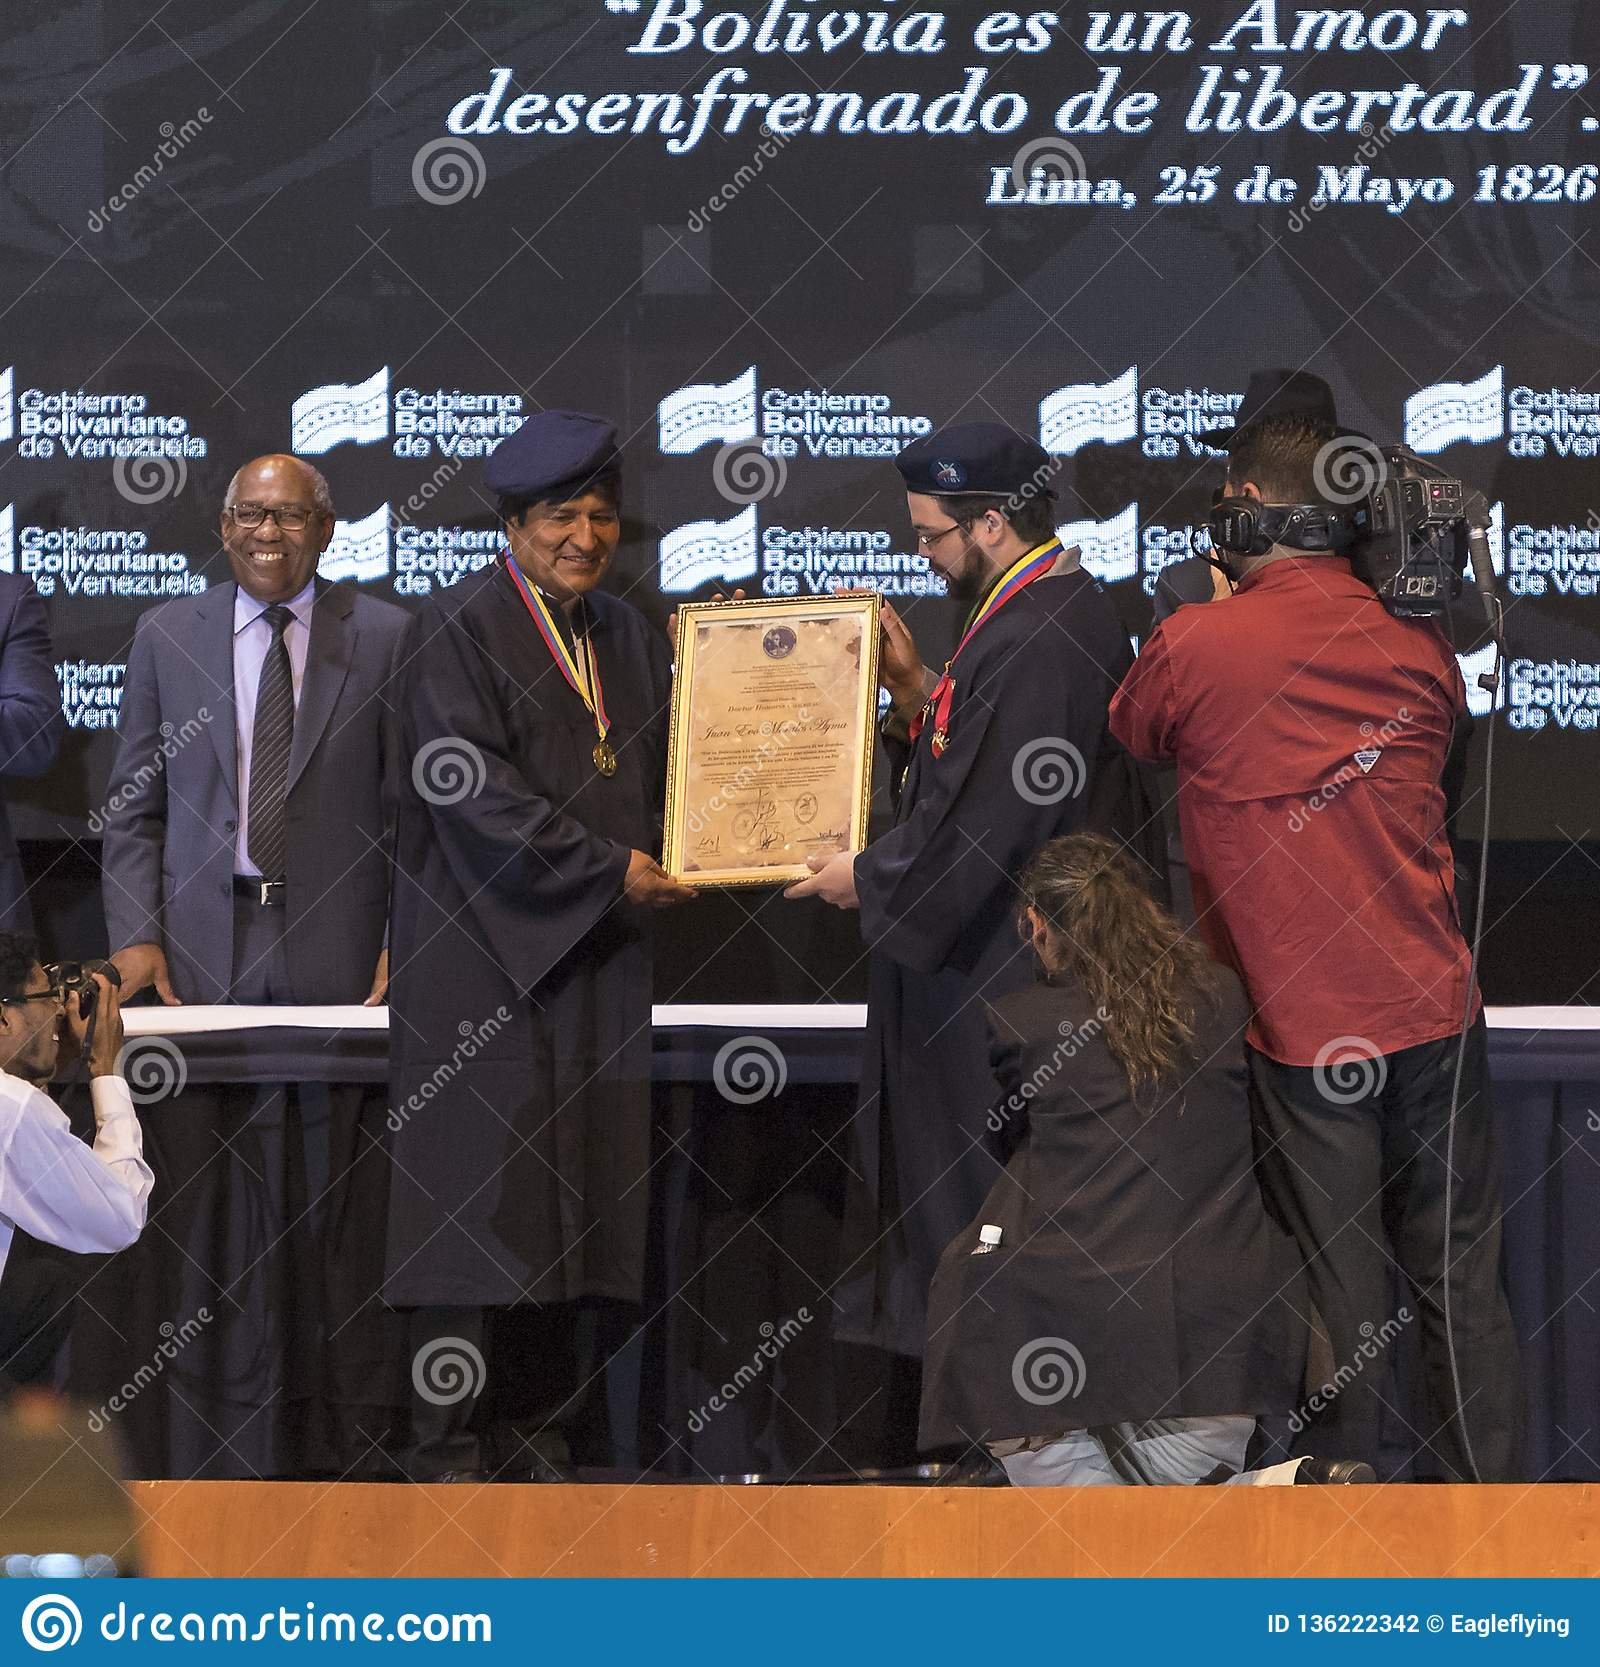 Evo Morales Ayma, President of the Plurinational State of Bolivia, delivers a speech